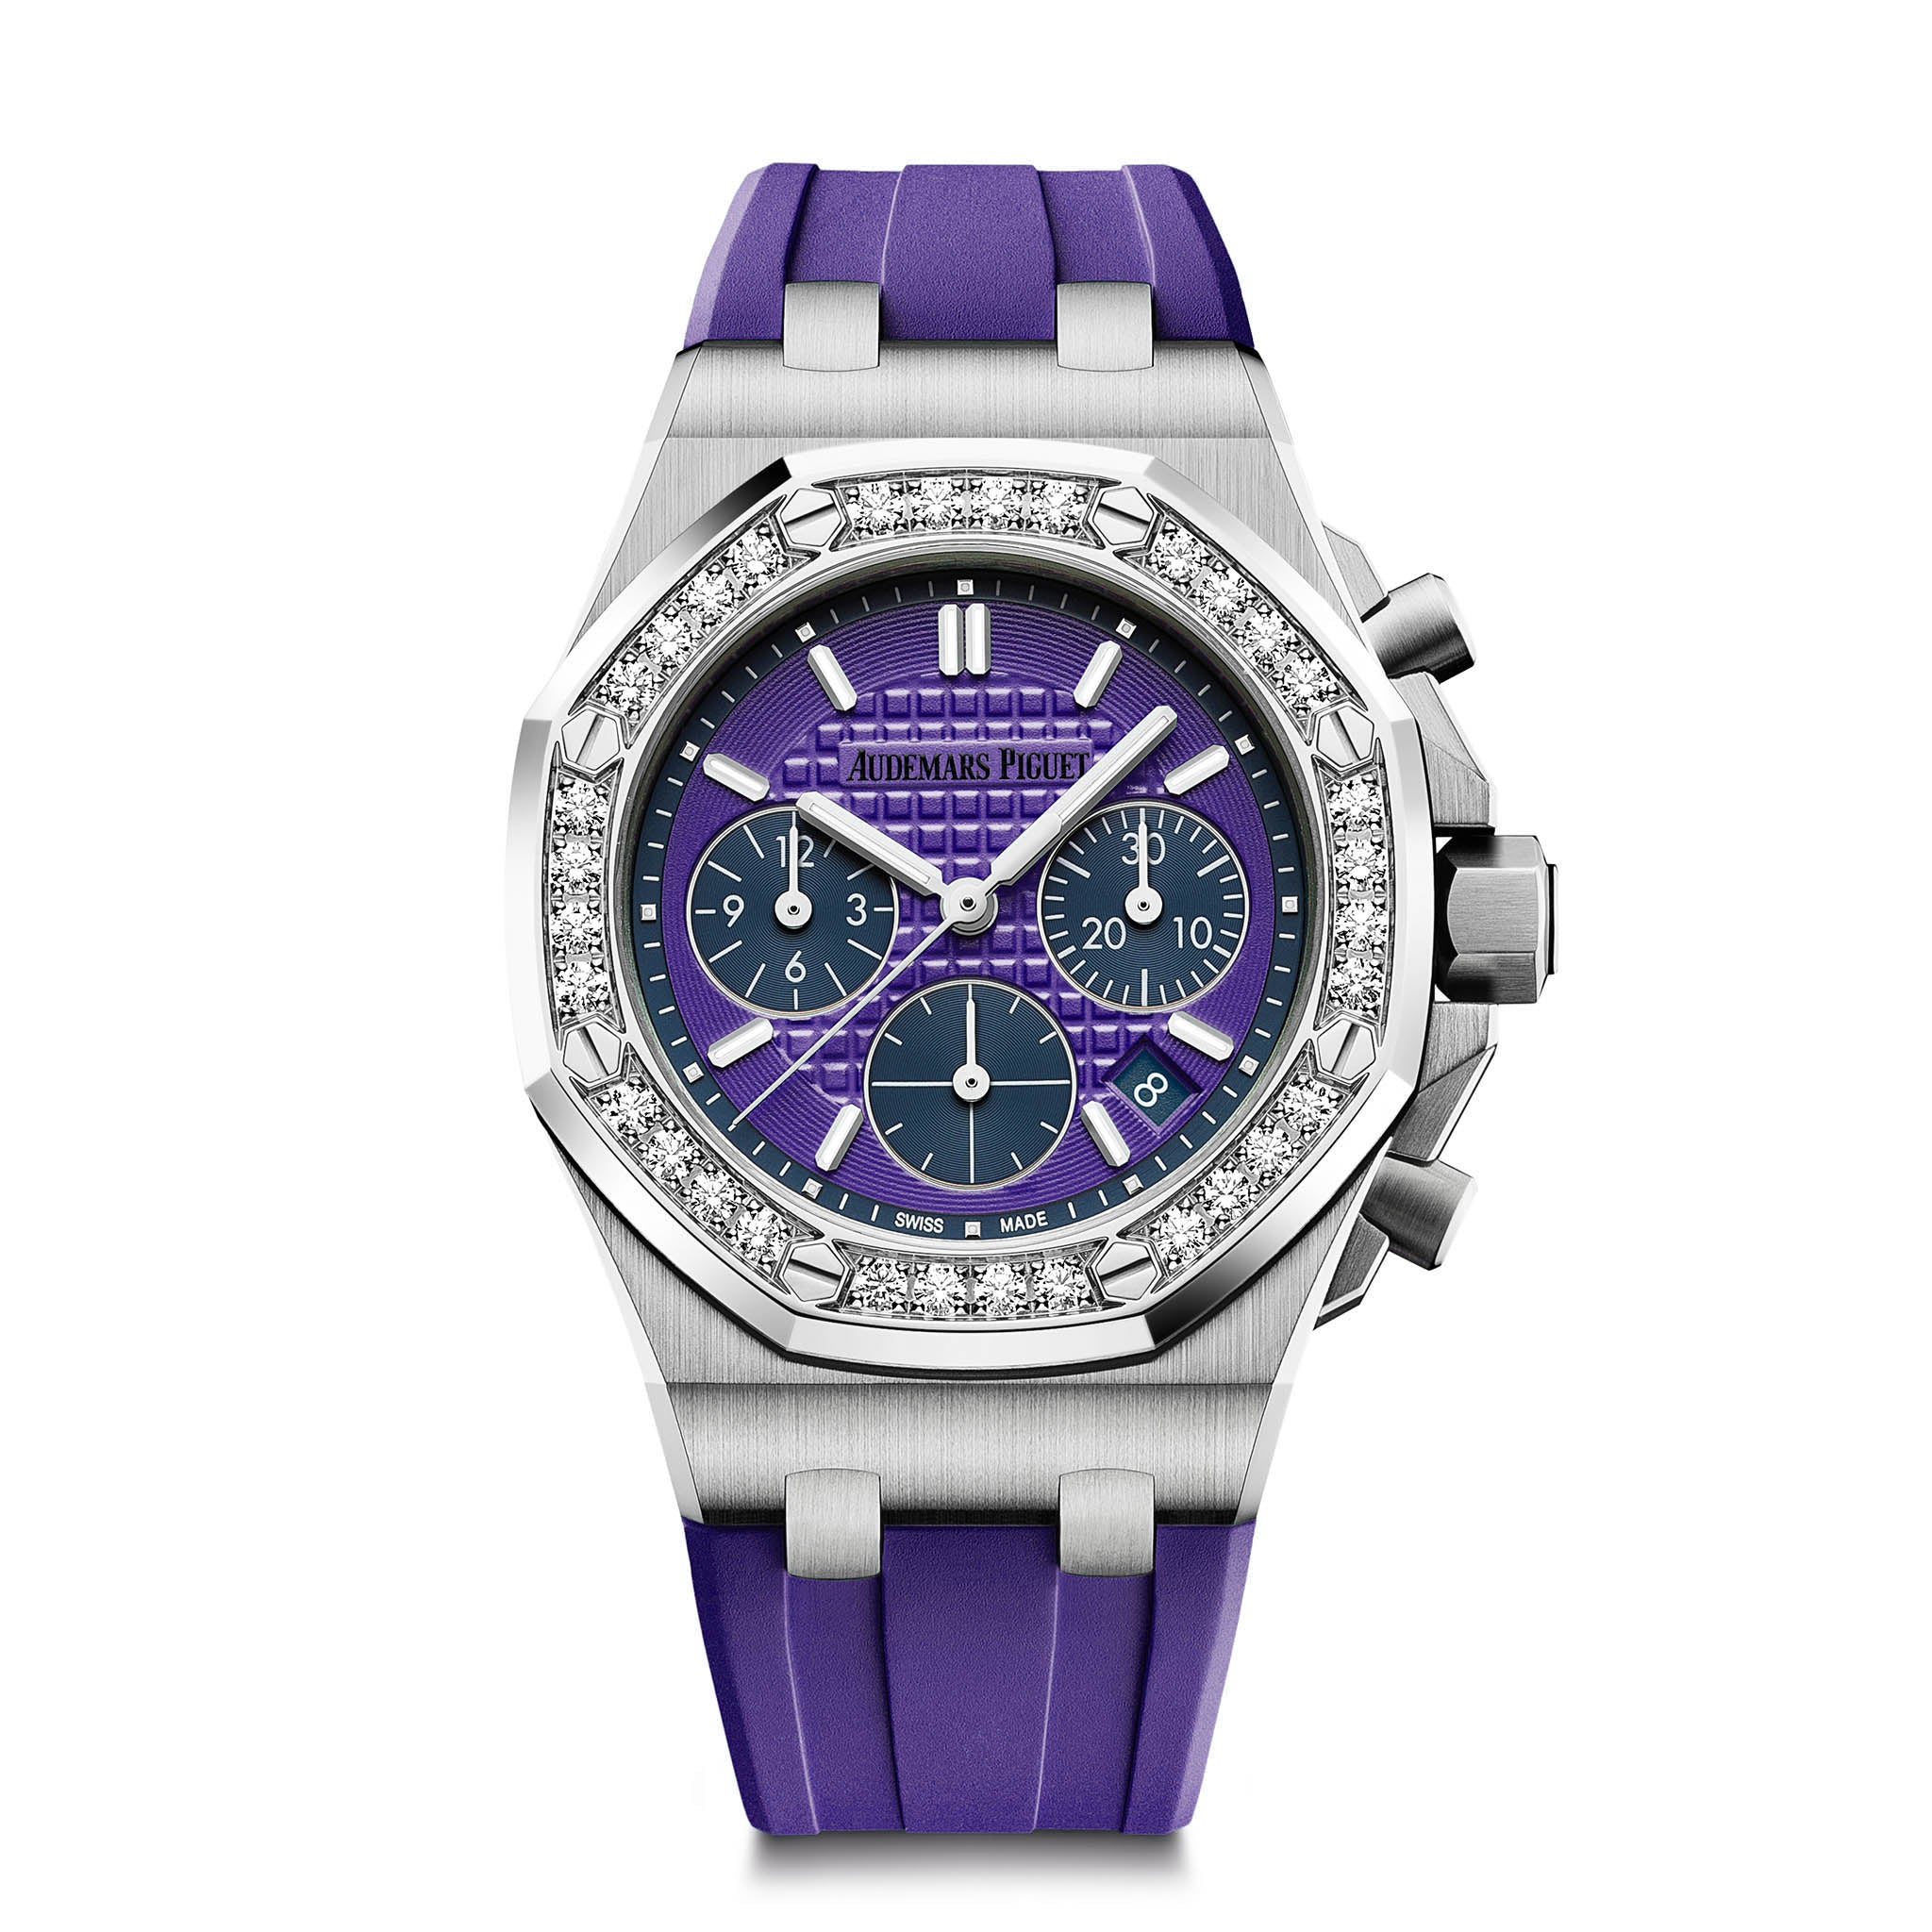 Royal Oak Offshore Ladies Chronograph 26231ST.ZZ.D075CA.01